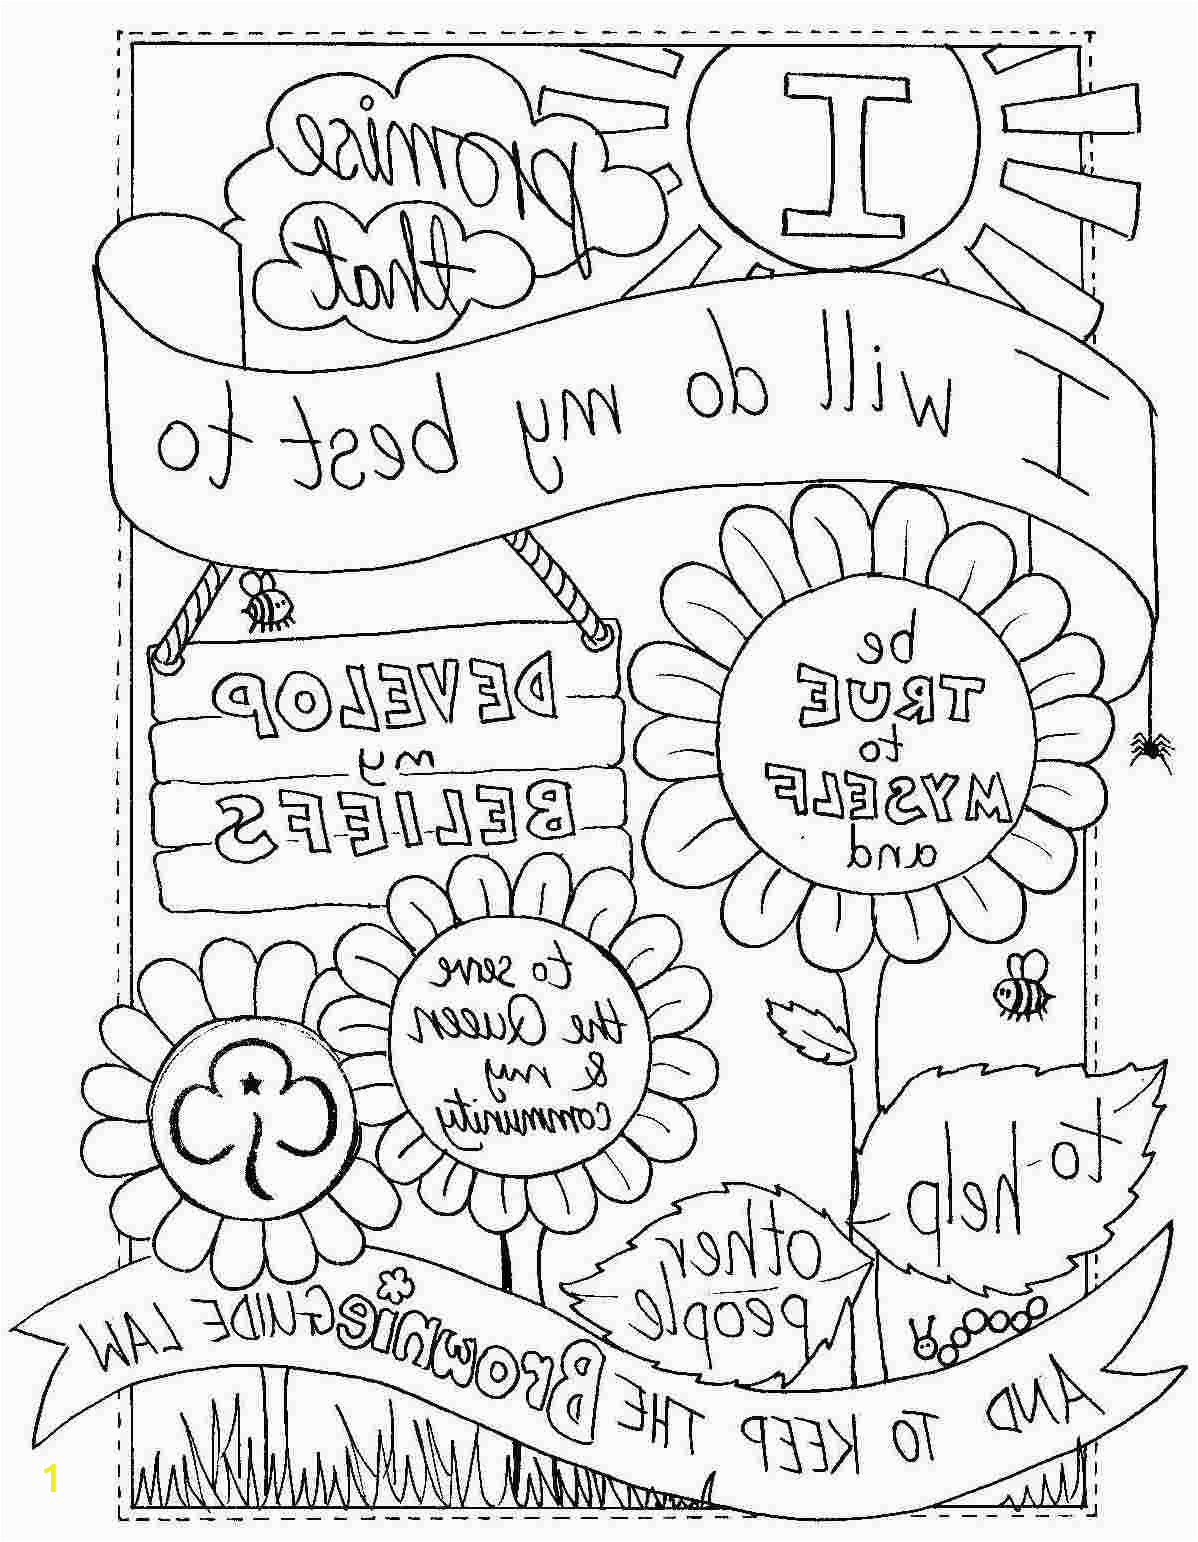 girl scout law coloring pages brownies 50 girl scout brownie coloring pages brownie scout promise coloring pages coloring coloring scout law girl brownies pages